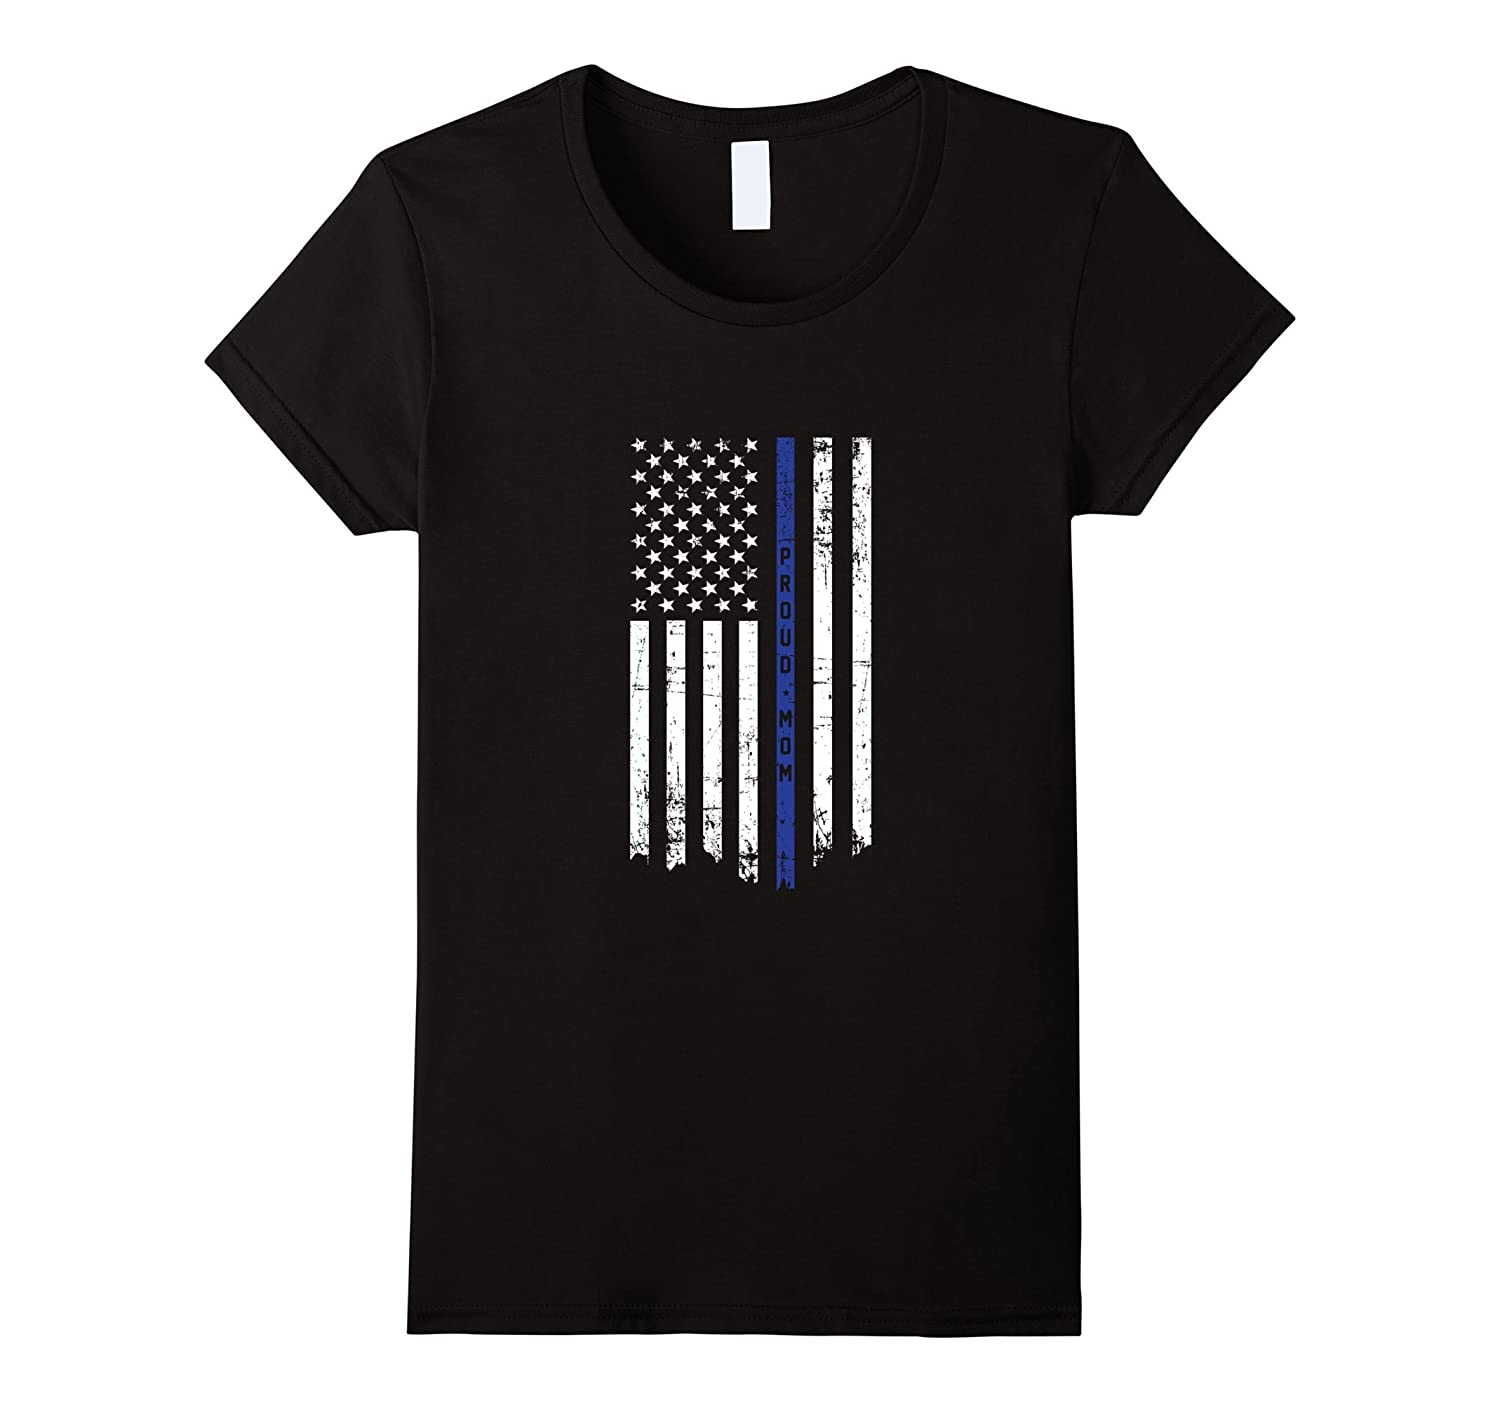 Women's Proud Mom Police Officer Thin Blue Line Flag T-shirt-CL